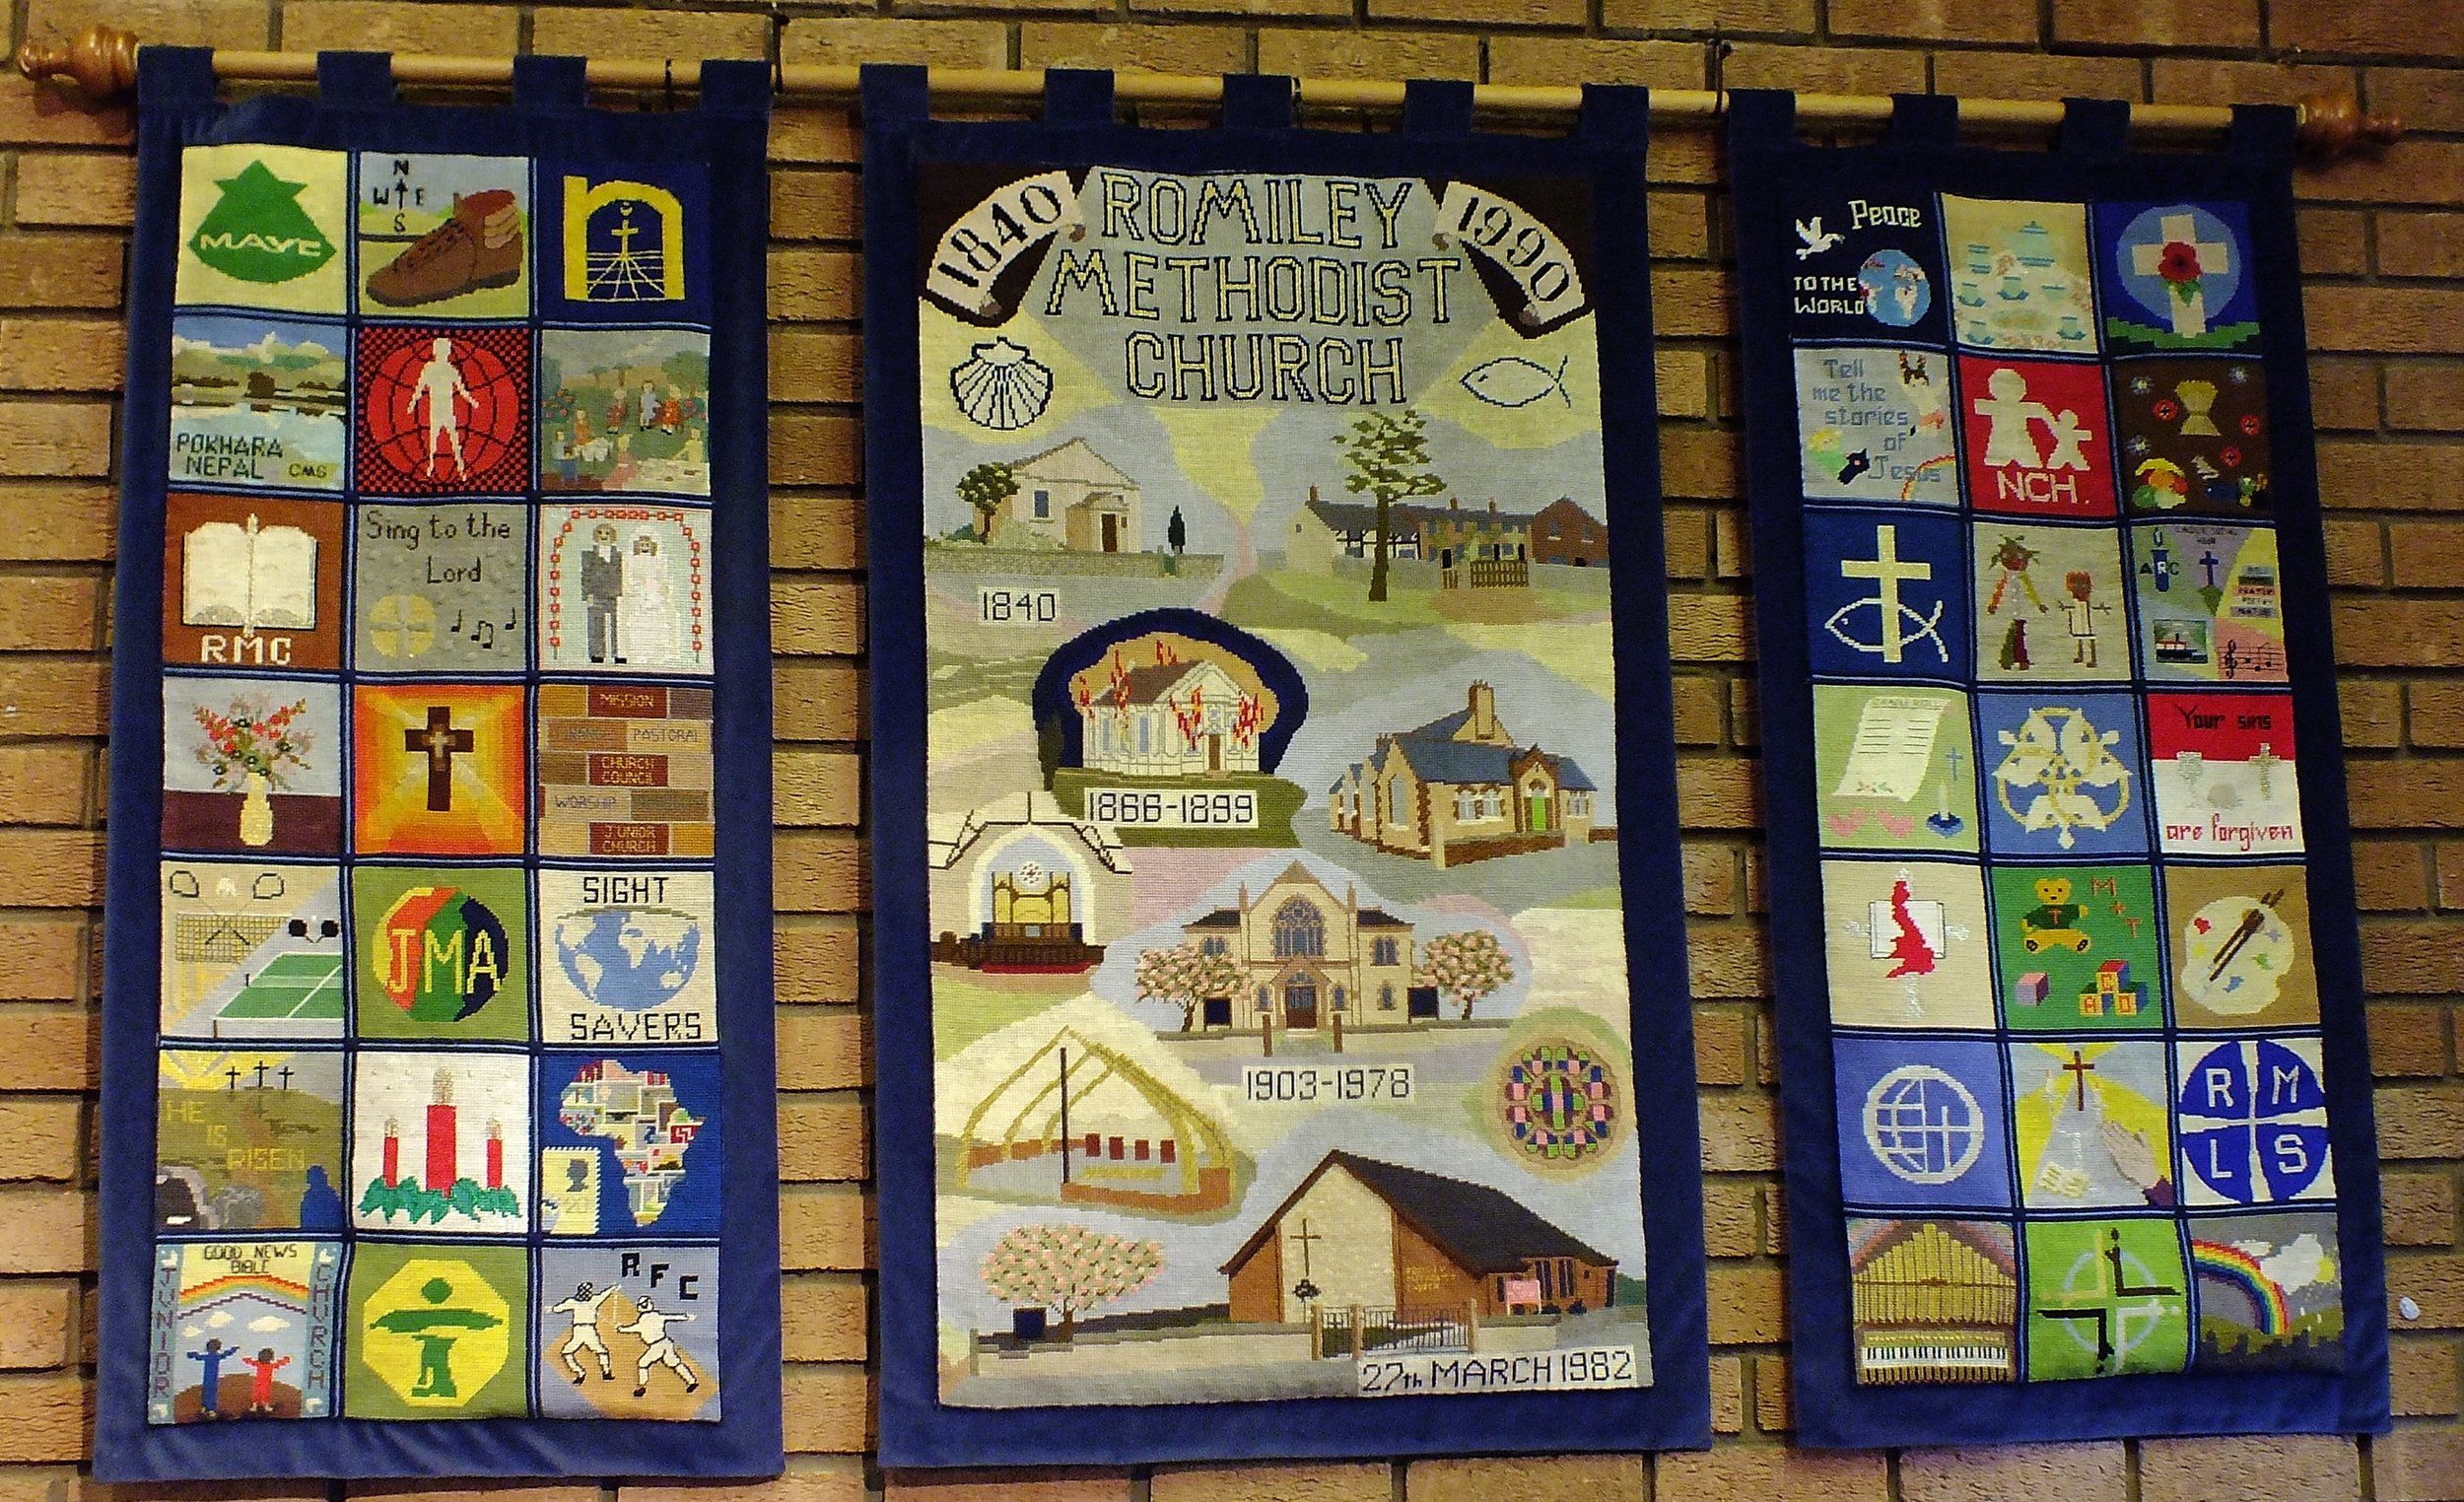 This cross stitch display was done by a team of members and shows the church history and also many of the Church activities